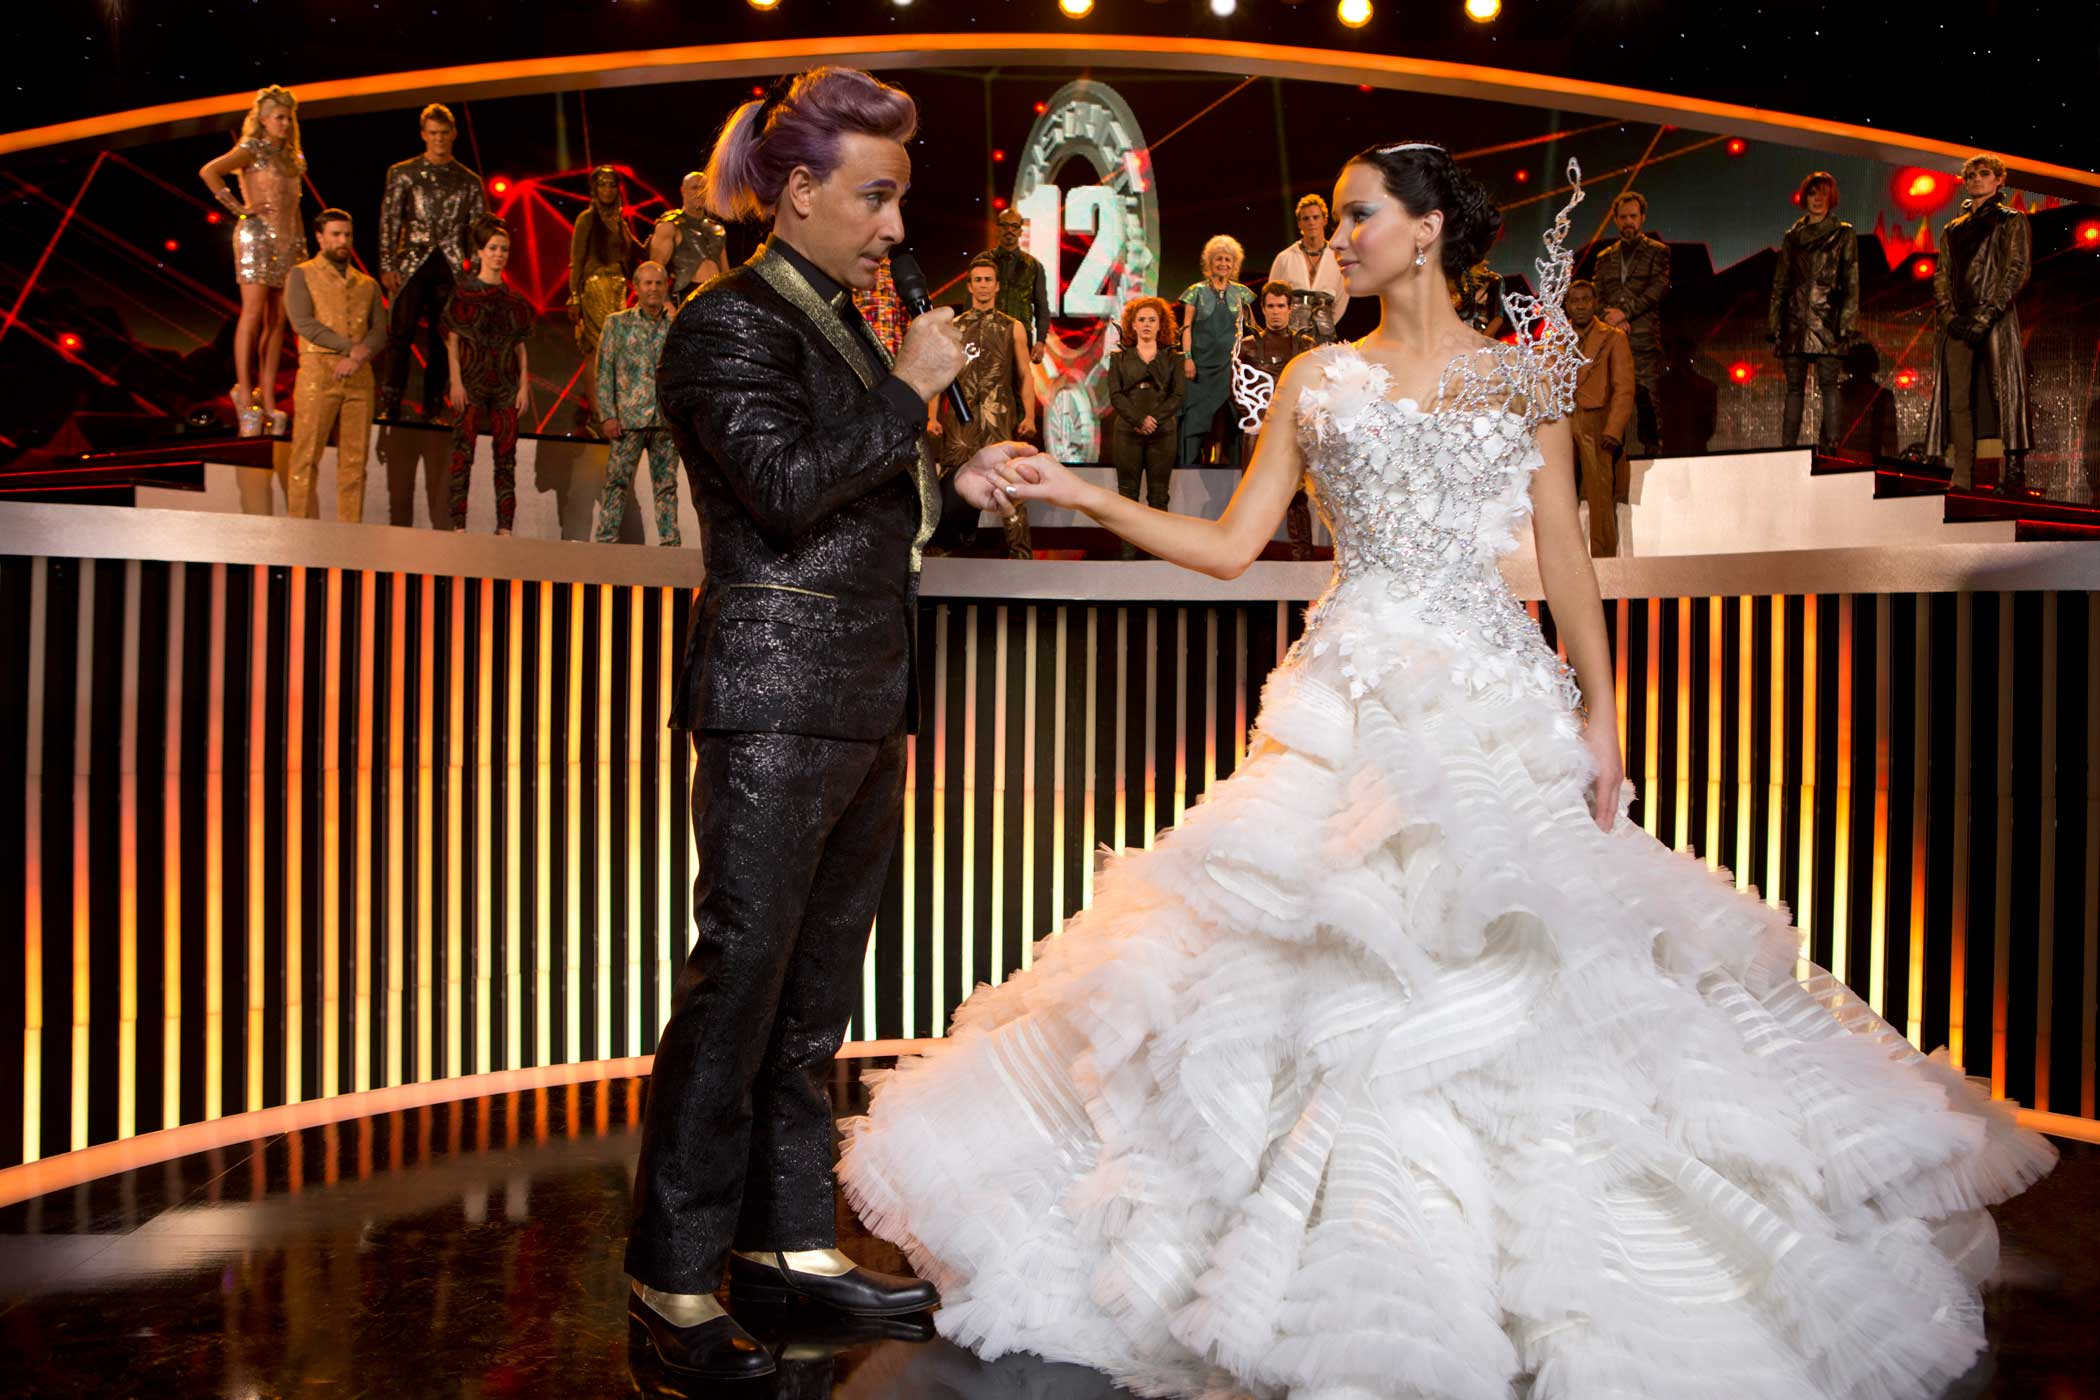 Stanley Tucci as Caesar Flickerman and Jennifer Lawrence as Katniss Everdeen in The Hunger Games: Catching Fire                               , 2013.